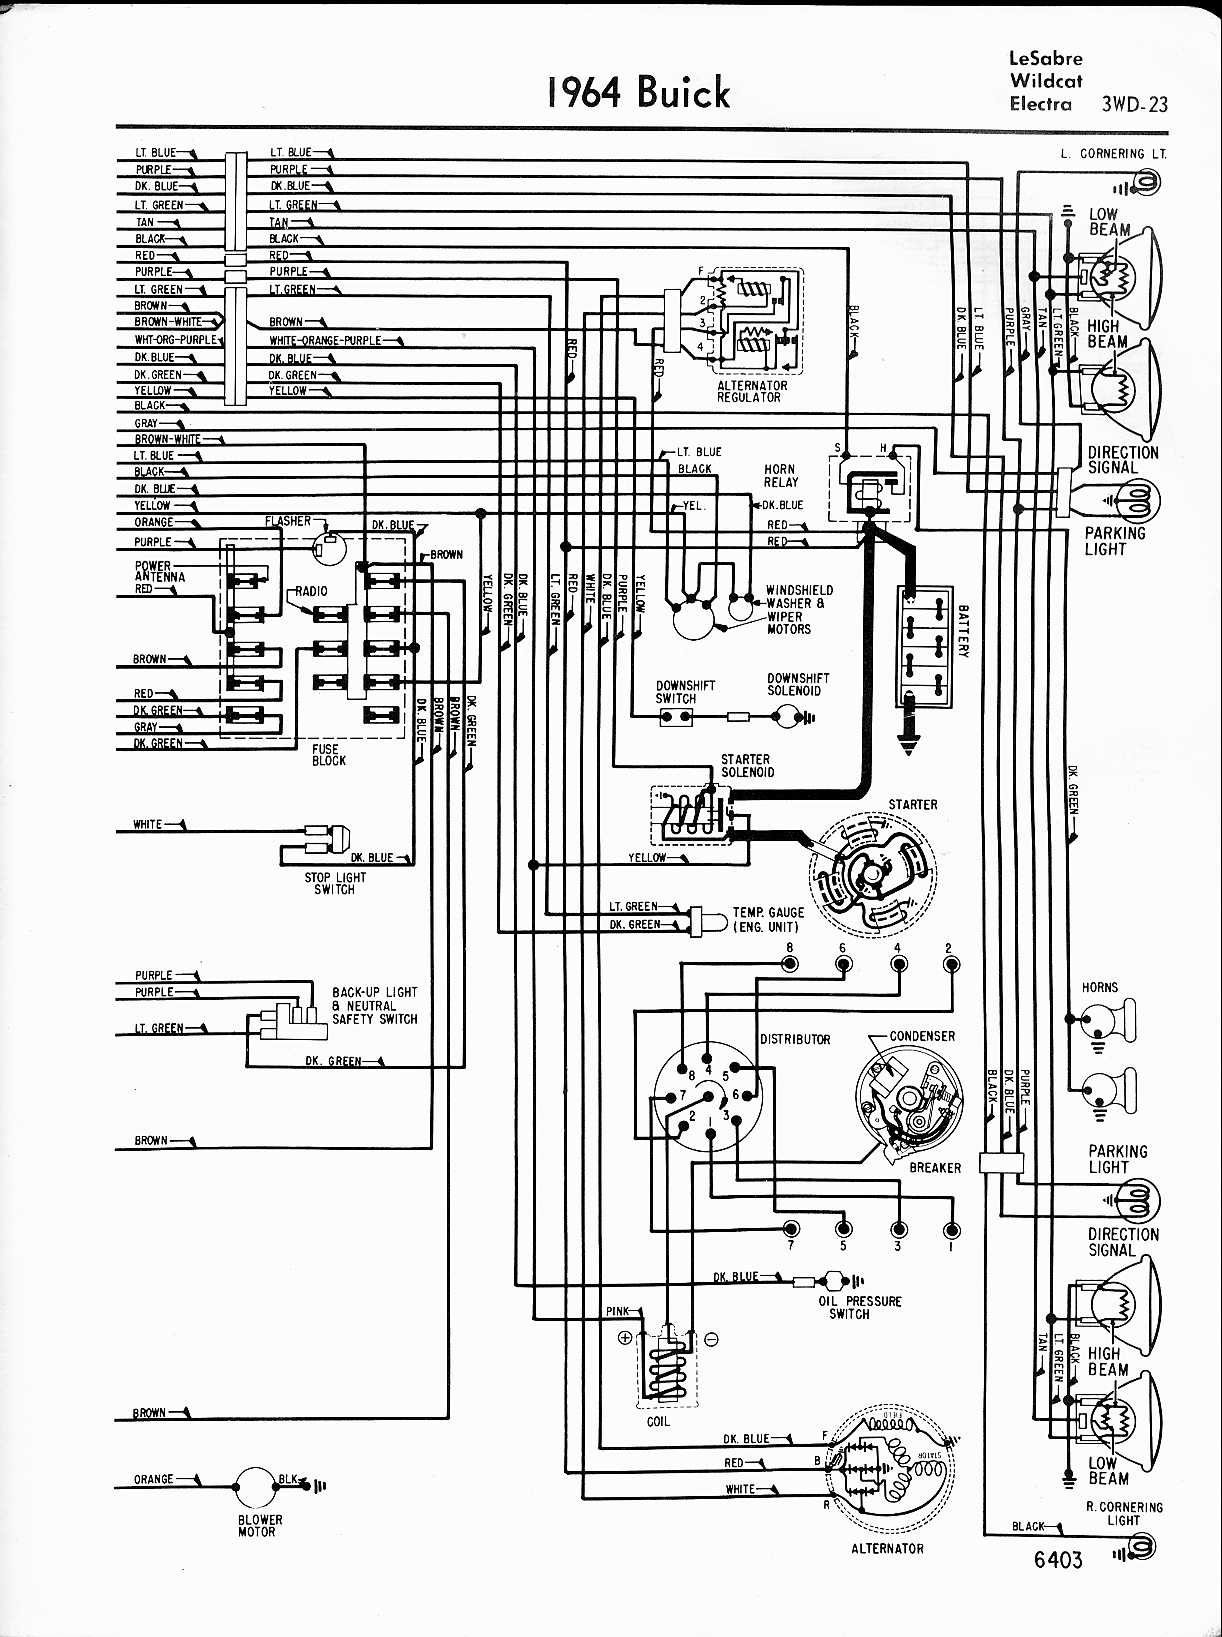 1521dd0 2002 bmw 745li radio wiring diagram | wiring library bmw 745i wiring diagram  wiring library